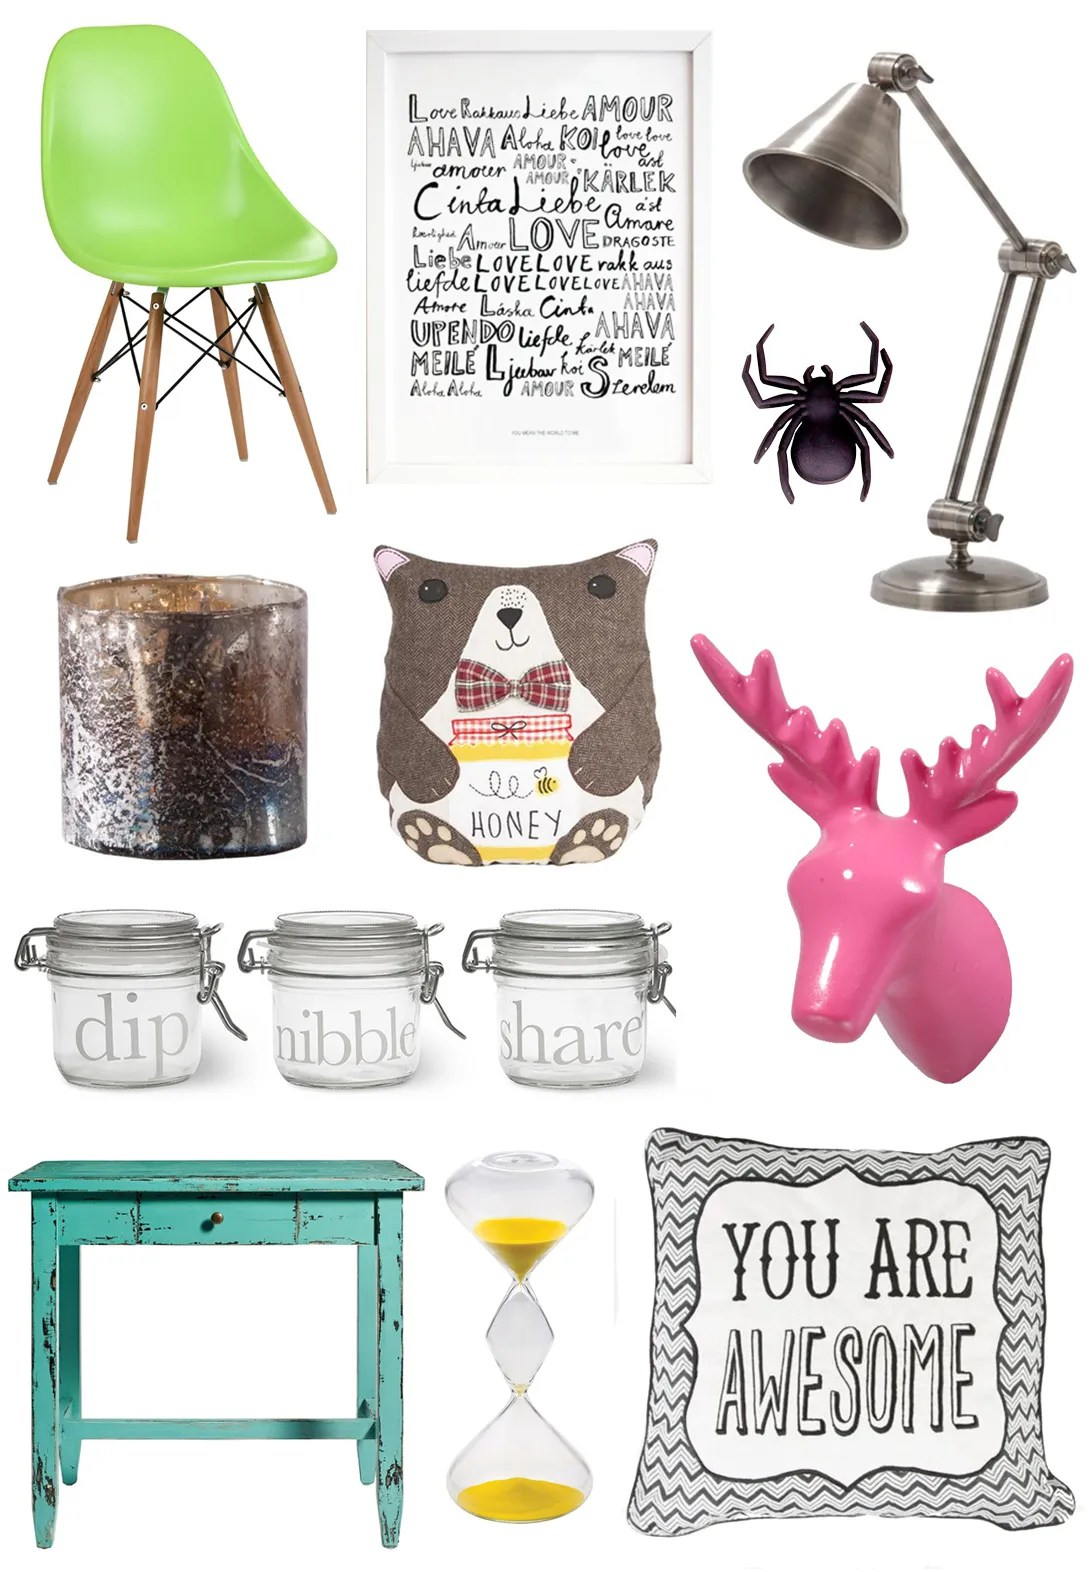 a home accessories wish list with achica thou shalt not